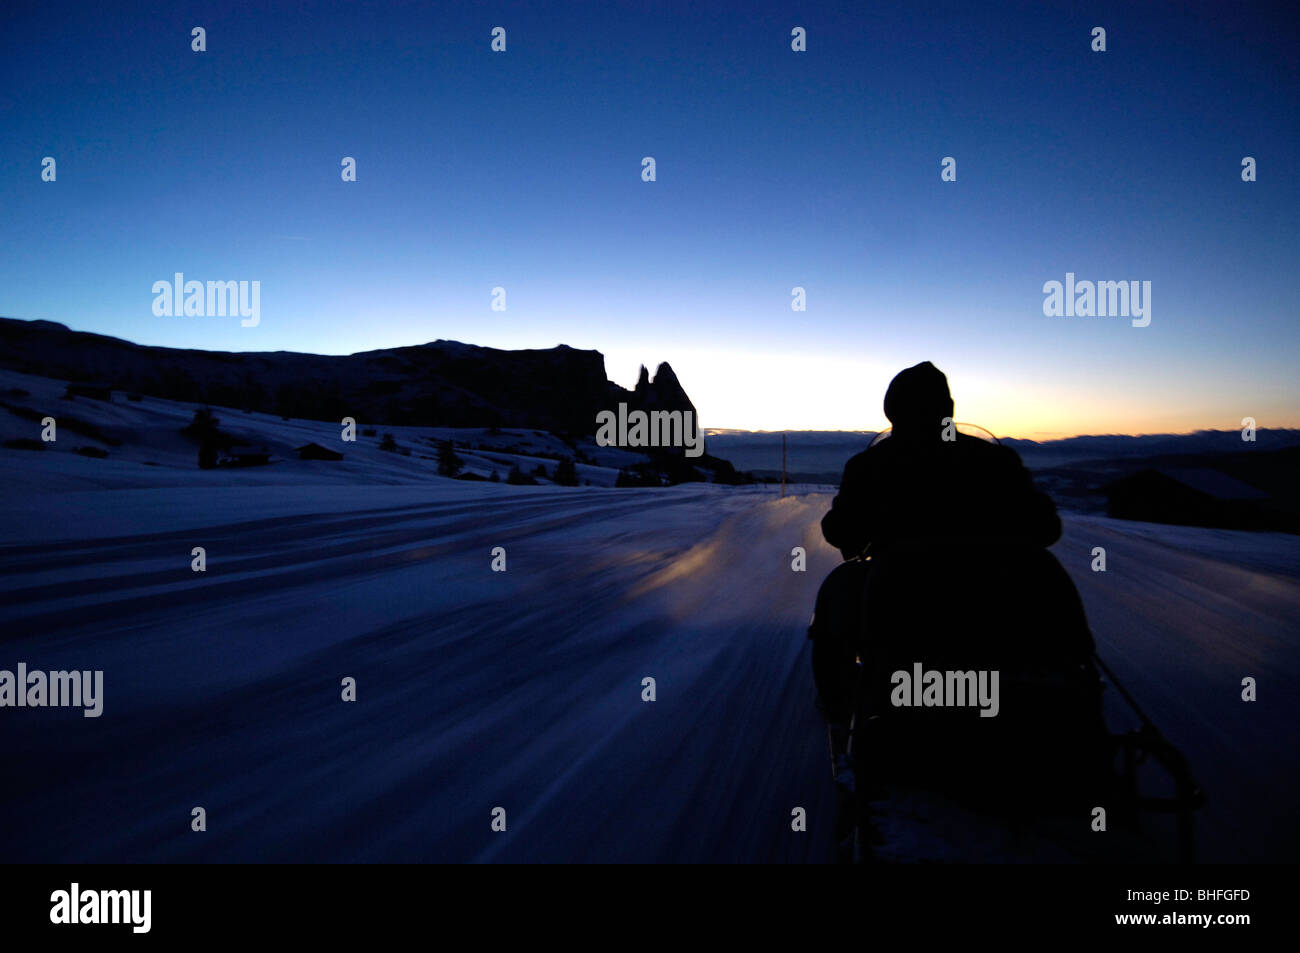 Man on a skidoo in the evening light, Seiser Alm, Schlern, South Tyrol, Italy Stock Photo